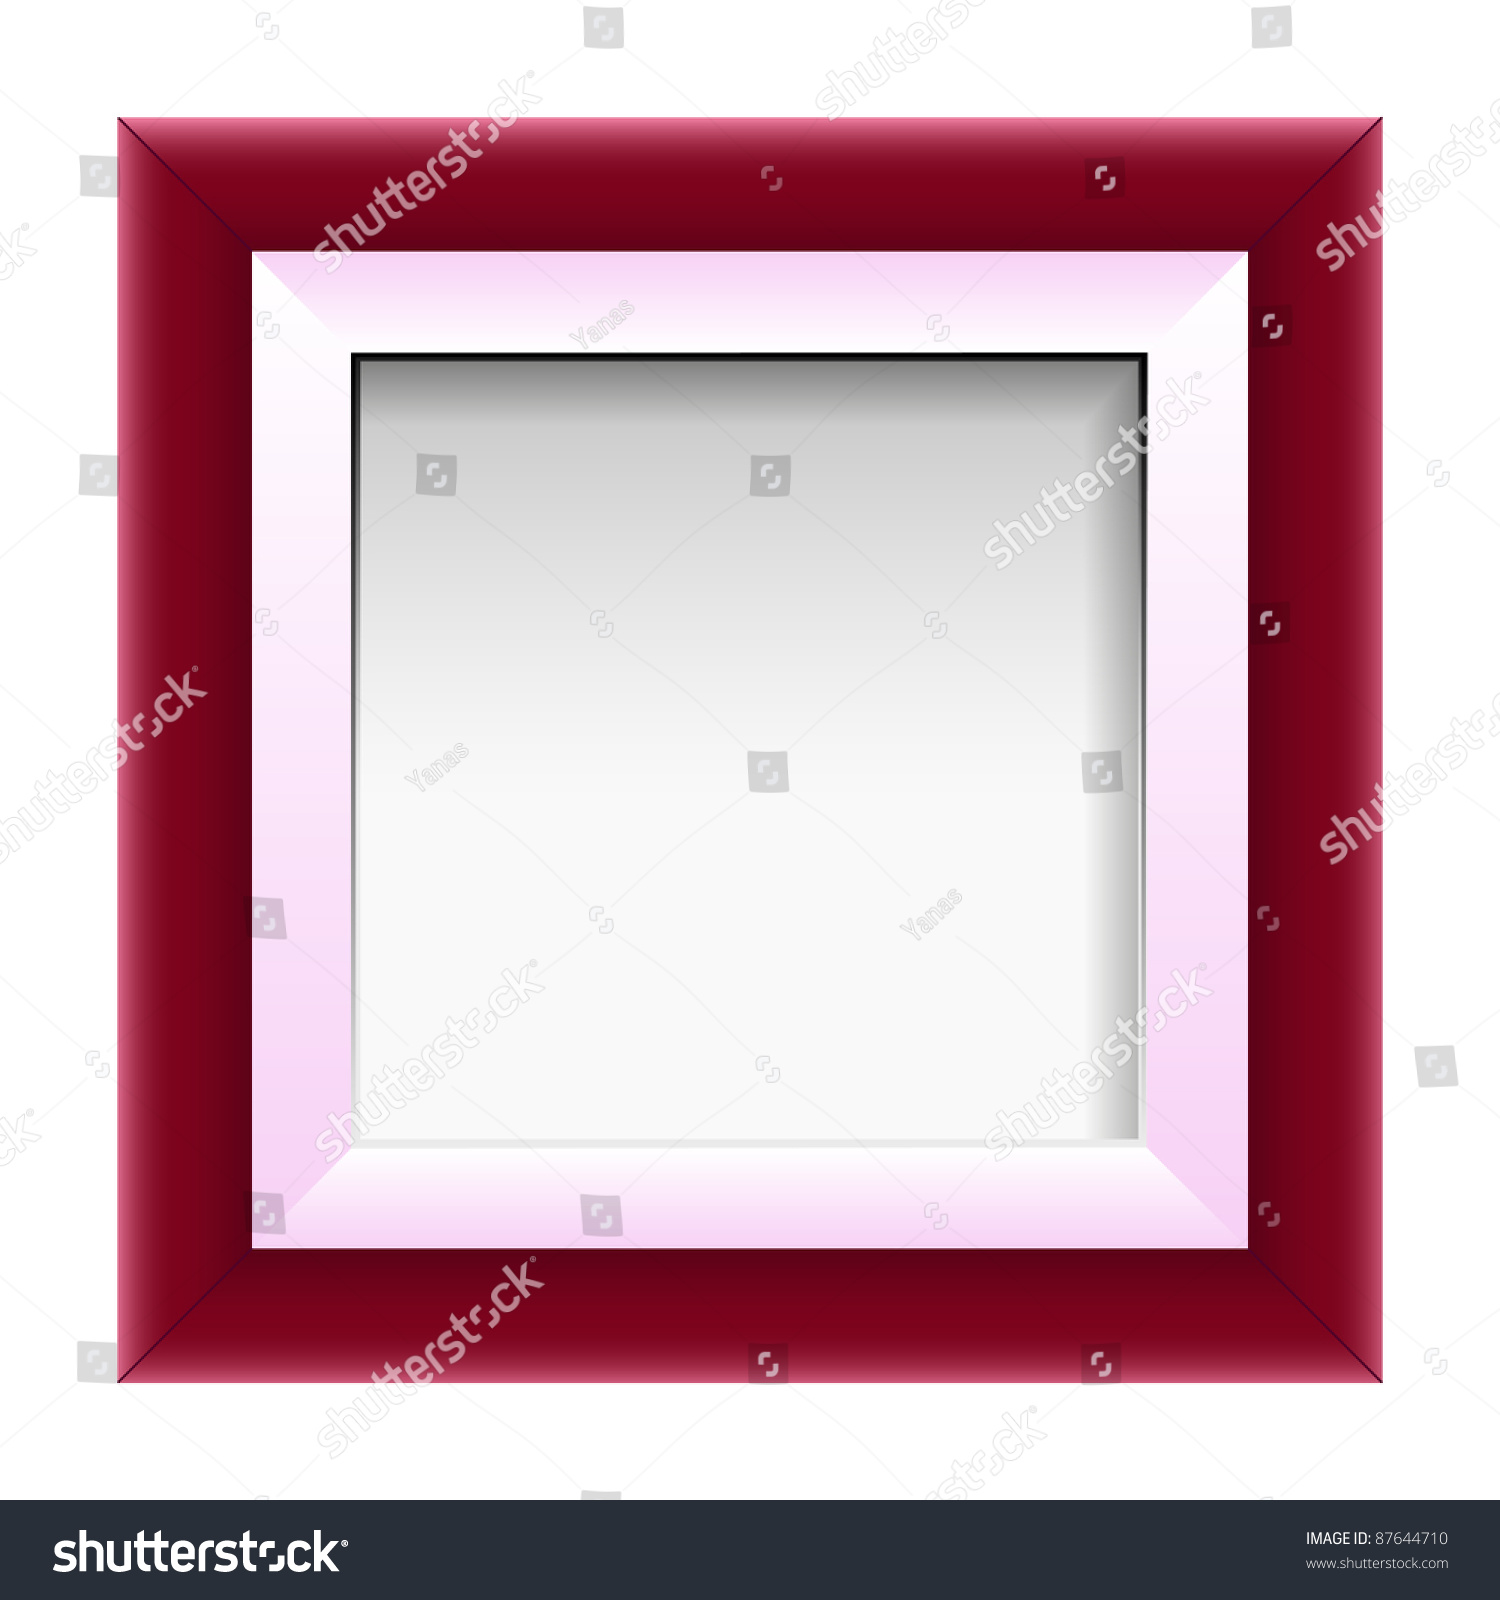 Red Picture Frame, Vector - 87644710 : Shutterstock